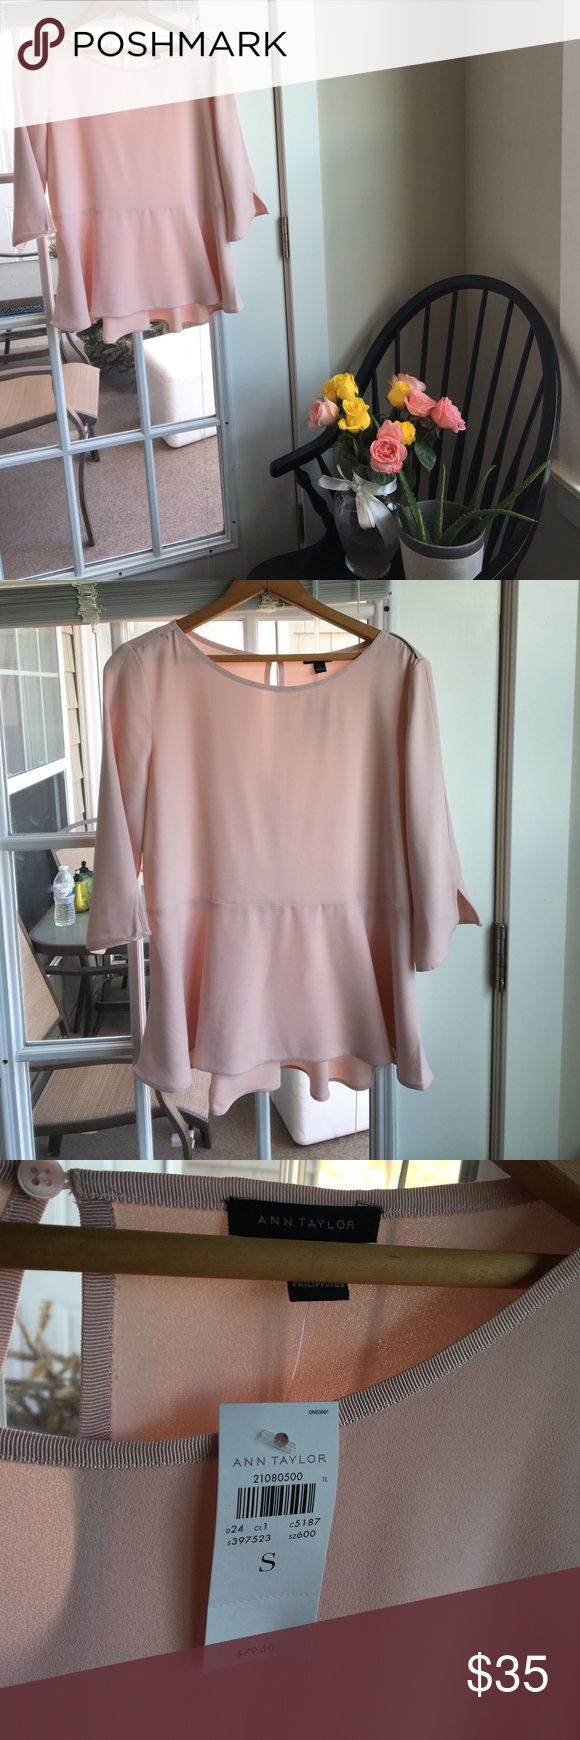 Ann Taylor light pink peplum top Quarter sleeve and light this pink peplum top is a delightful addition to your work or Sunday brunch wardrobe. Brand new with tags! Ann Taylor Tops Blouses